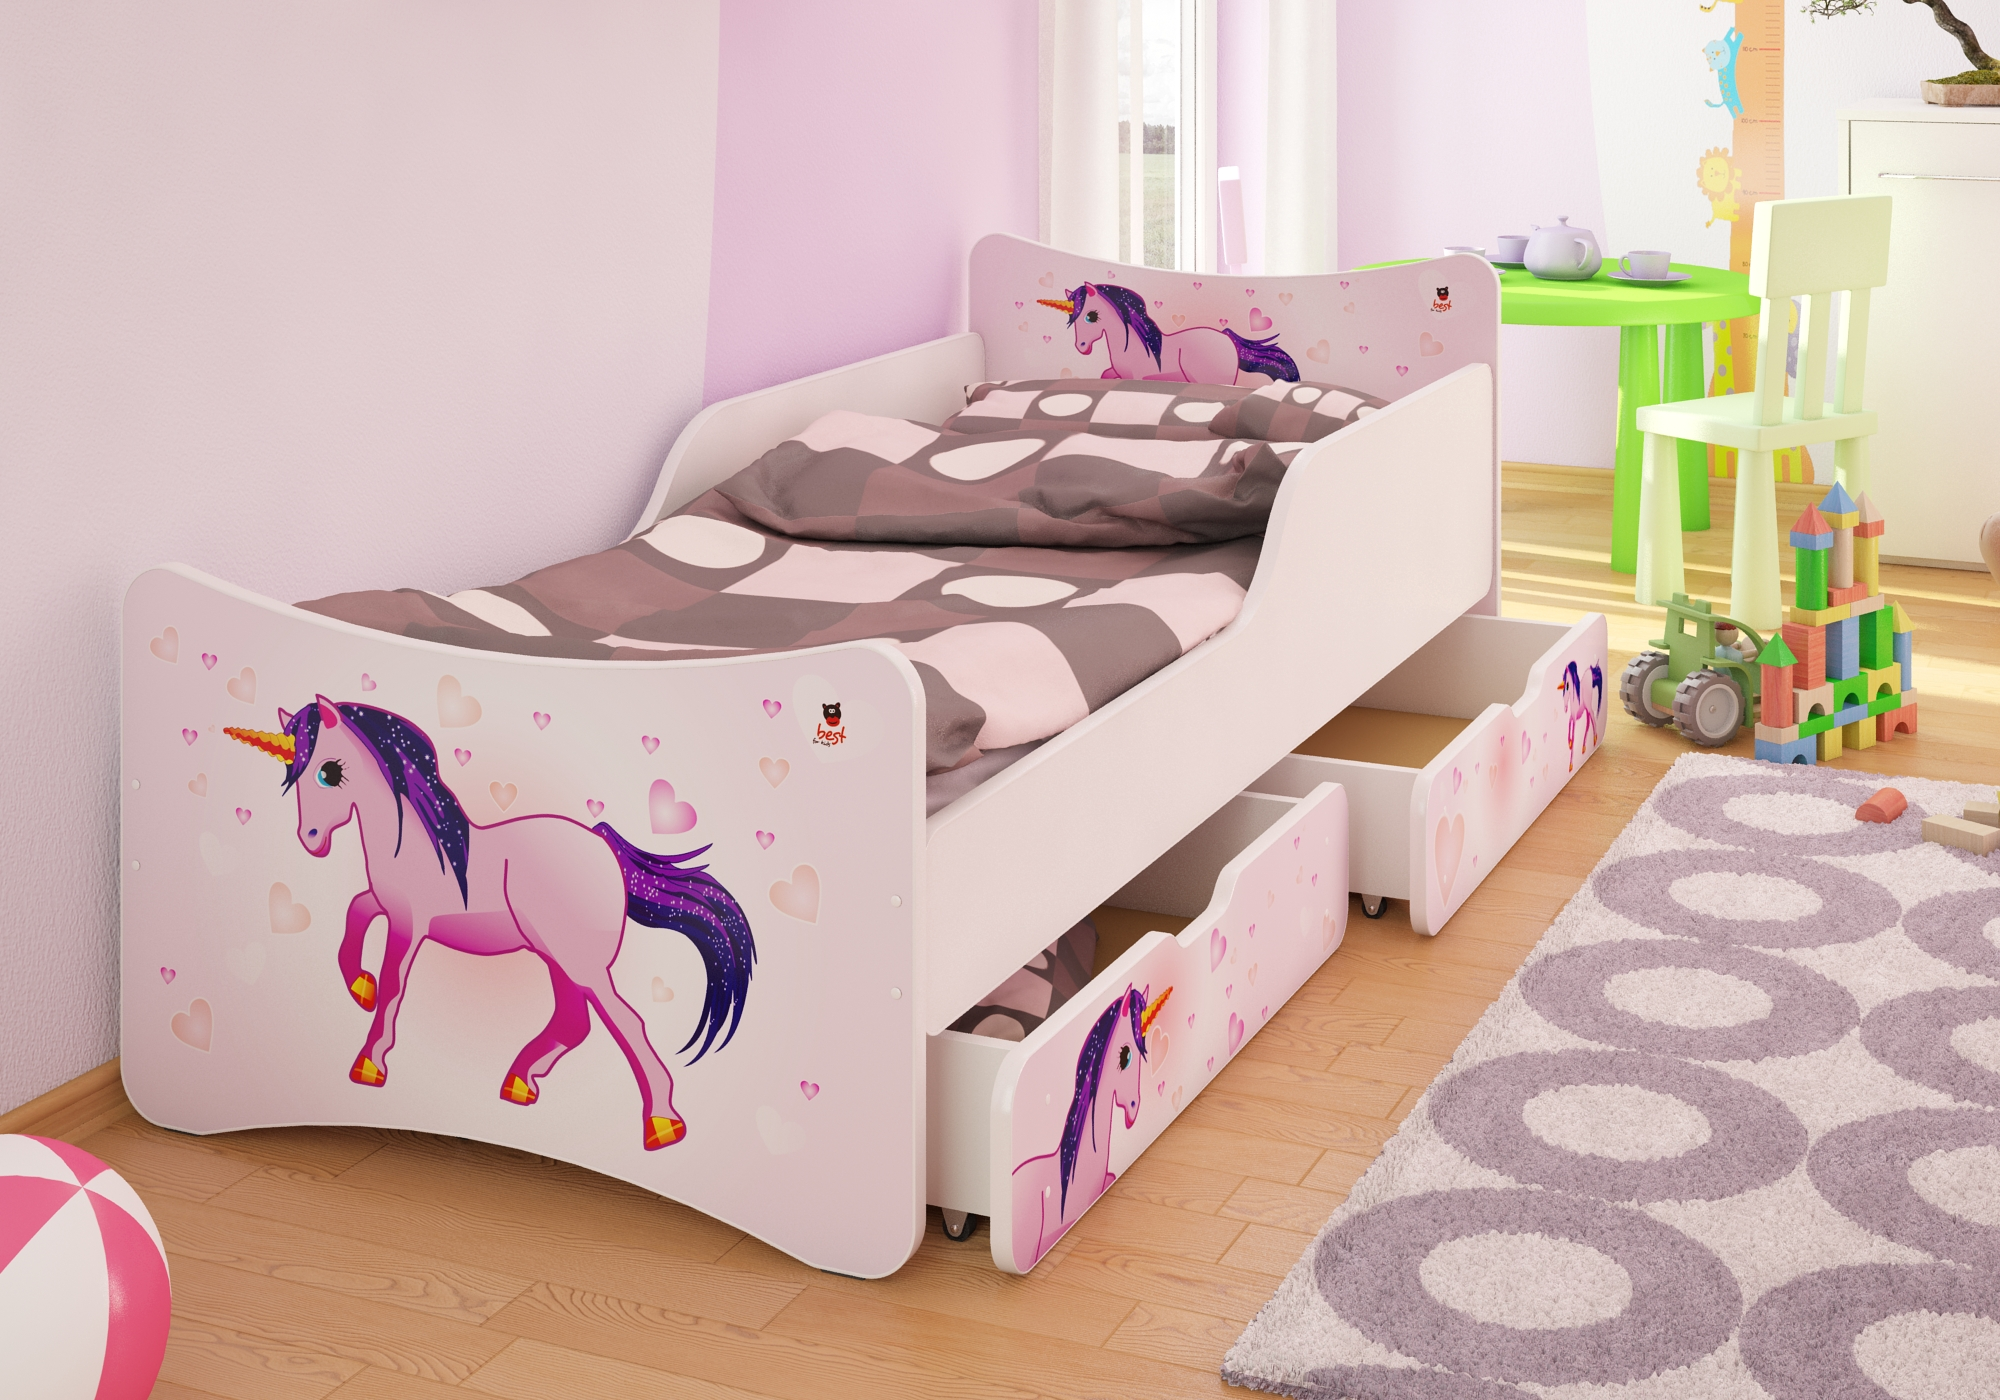 bfk brandneu bett kinderbett jugendbett mit matratze lattenrost schubladen ebay. Black Bedroom Furniture Sets. Home Design Ideas